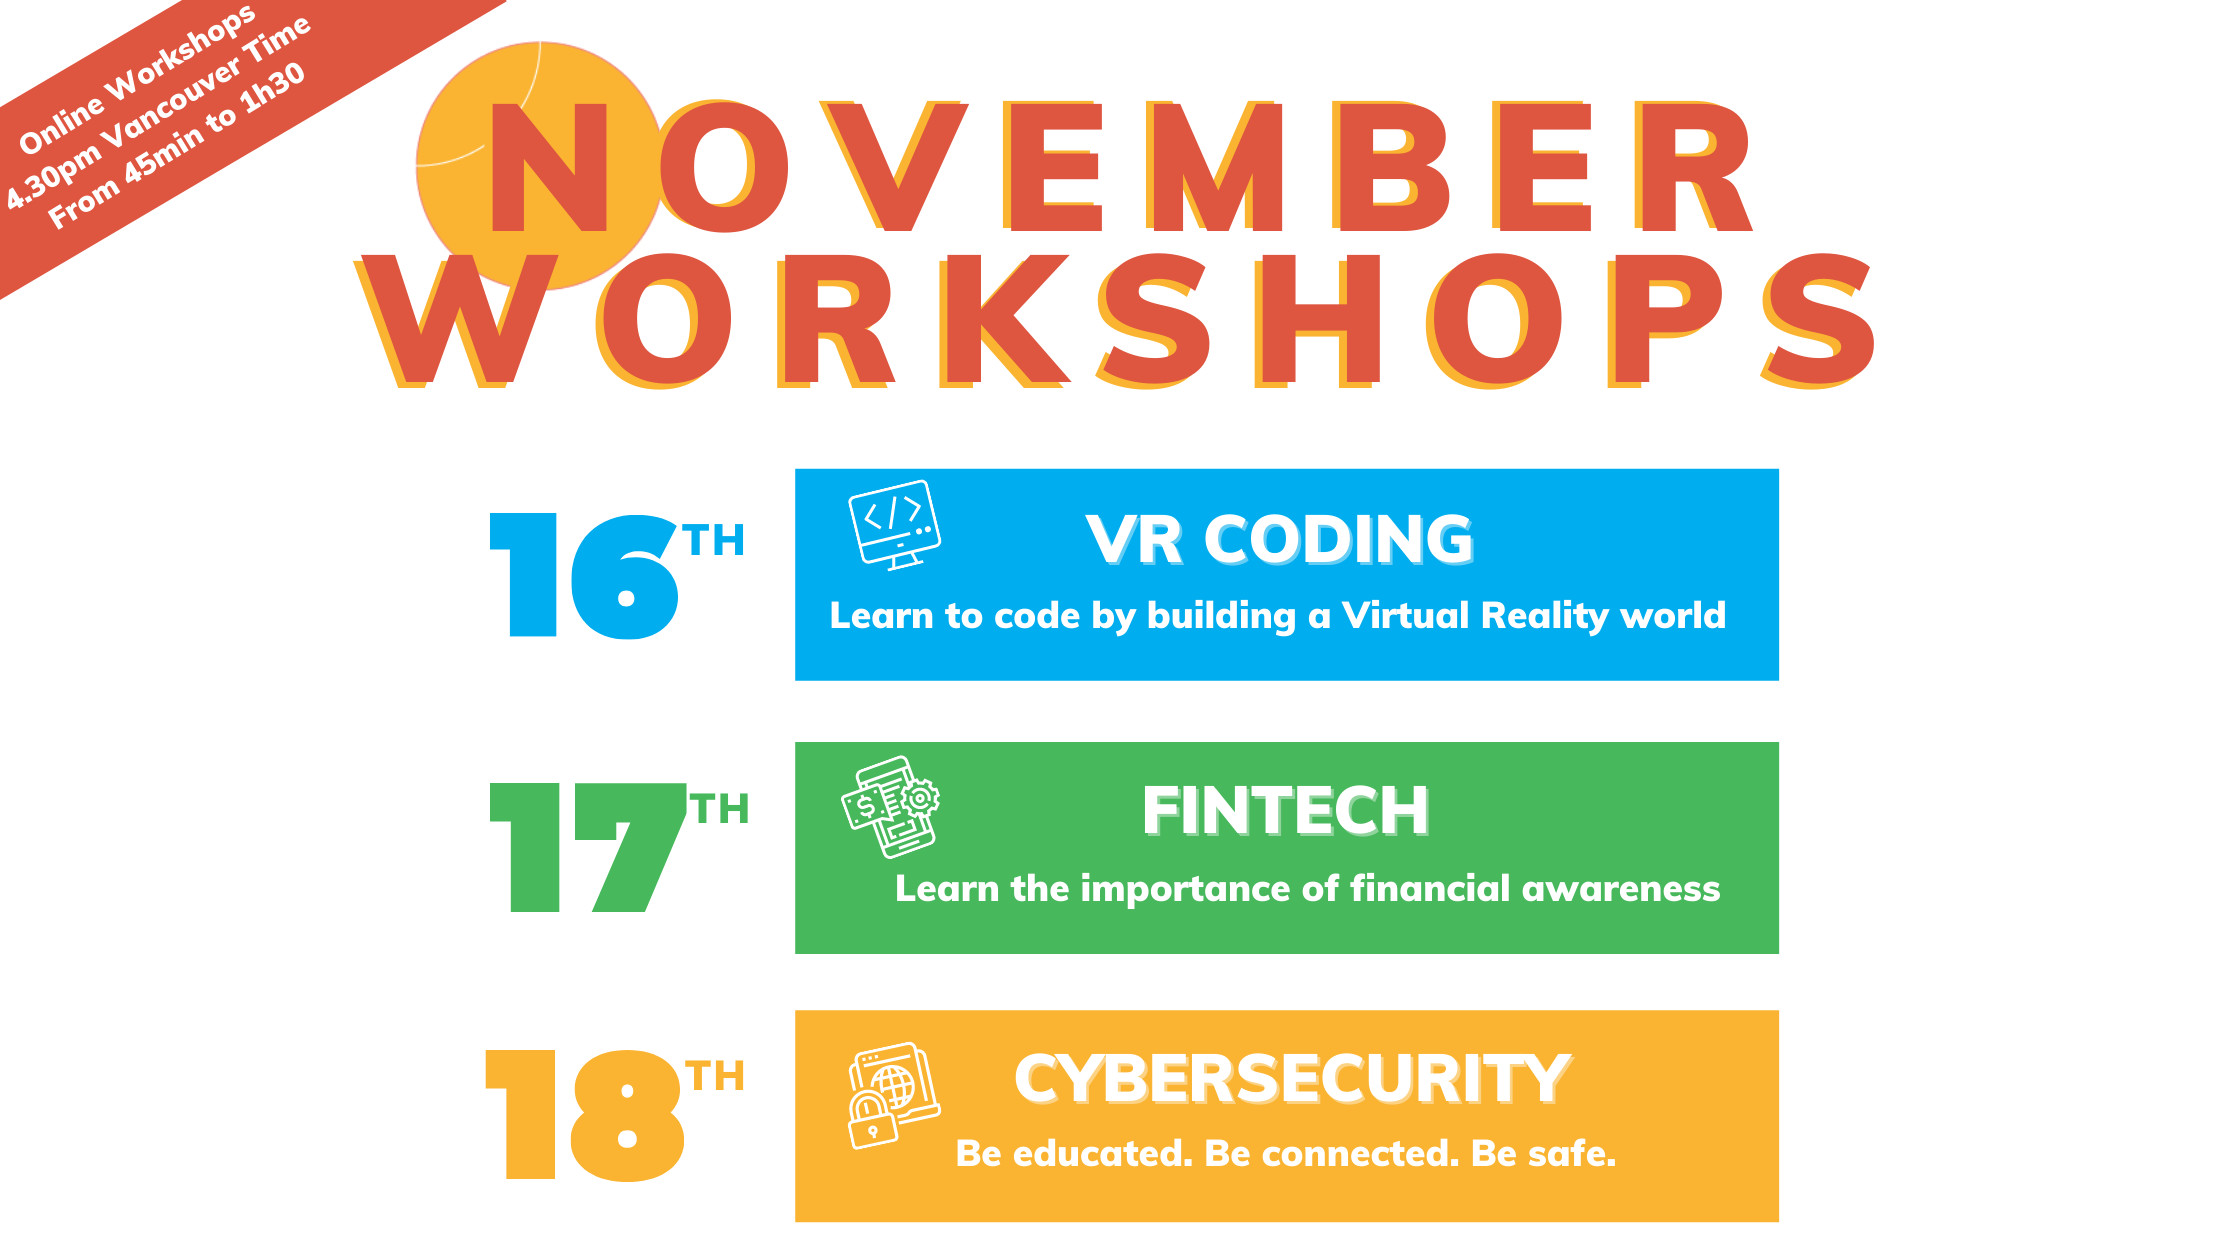 A banner to give the dates of the three upcoming workshops of The Urban Camp